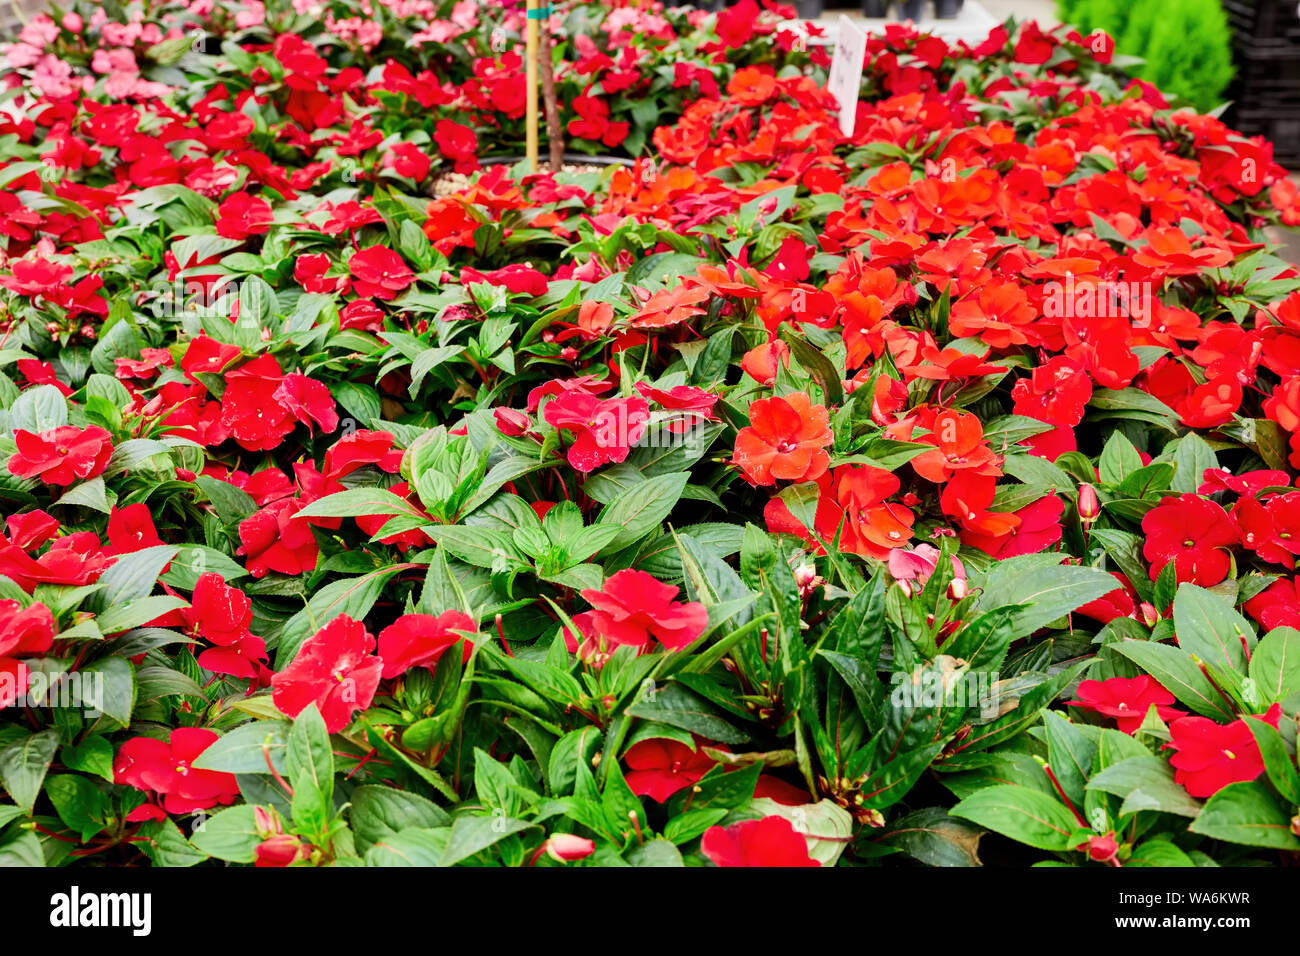 Beautiful fresh impatiens arranged in a flower shop. Red sunpatient flowers. Stock Photo